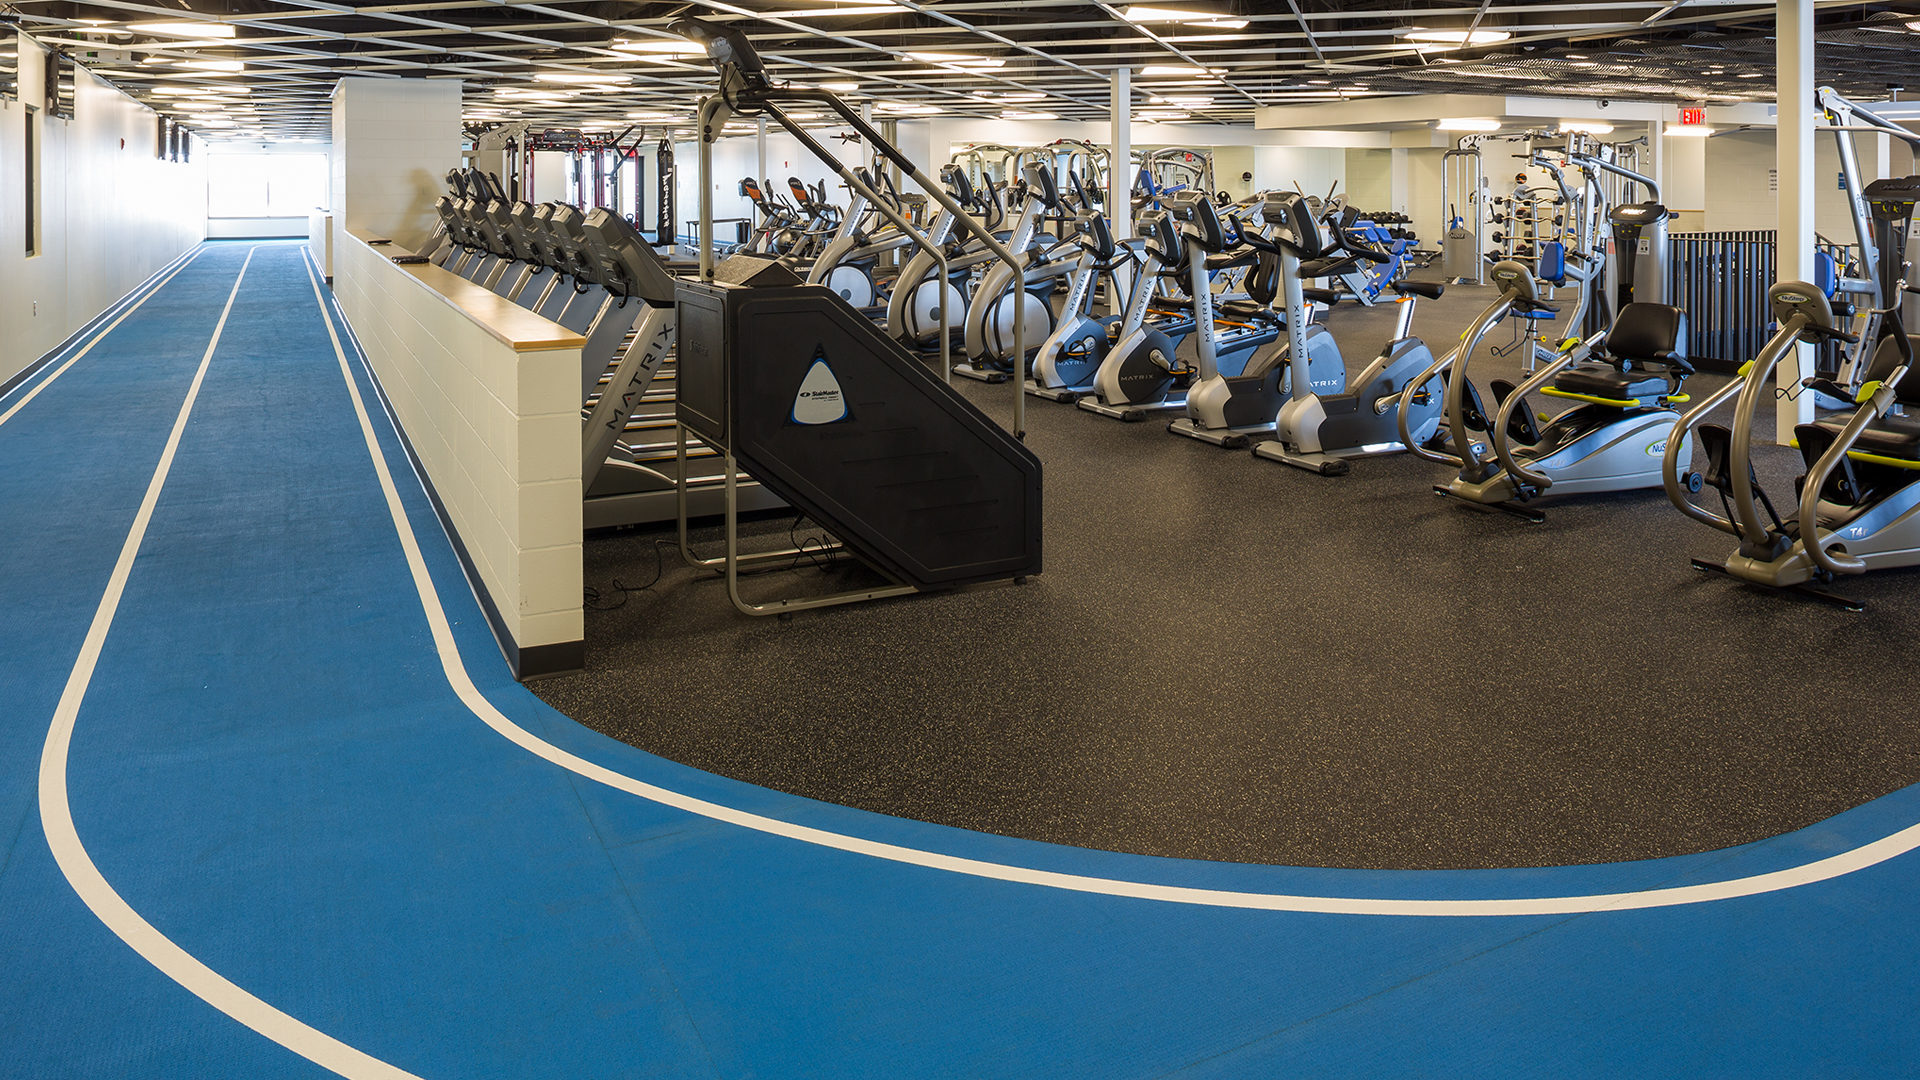 Maslowski Wellness and Research Center Wadena MN Interior Cardio Room and Walking Track